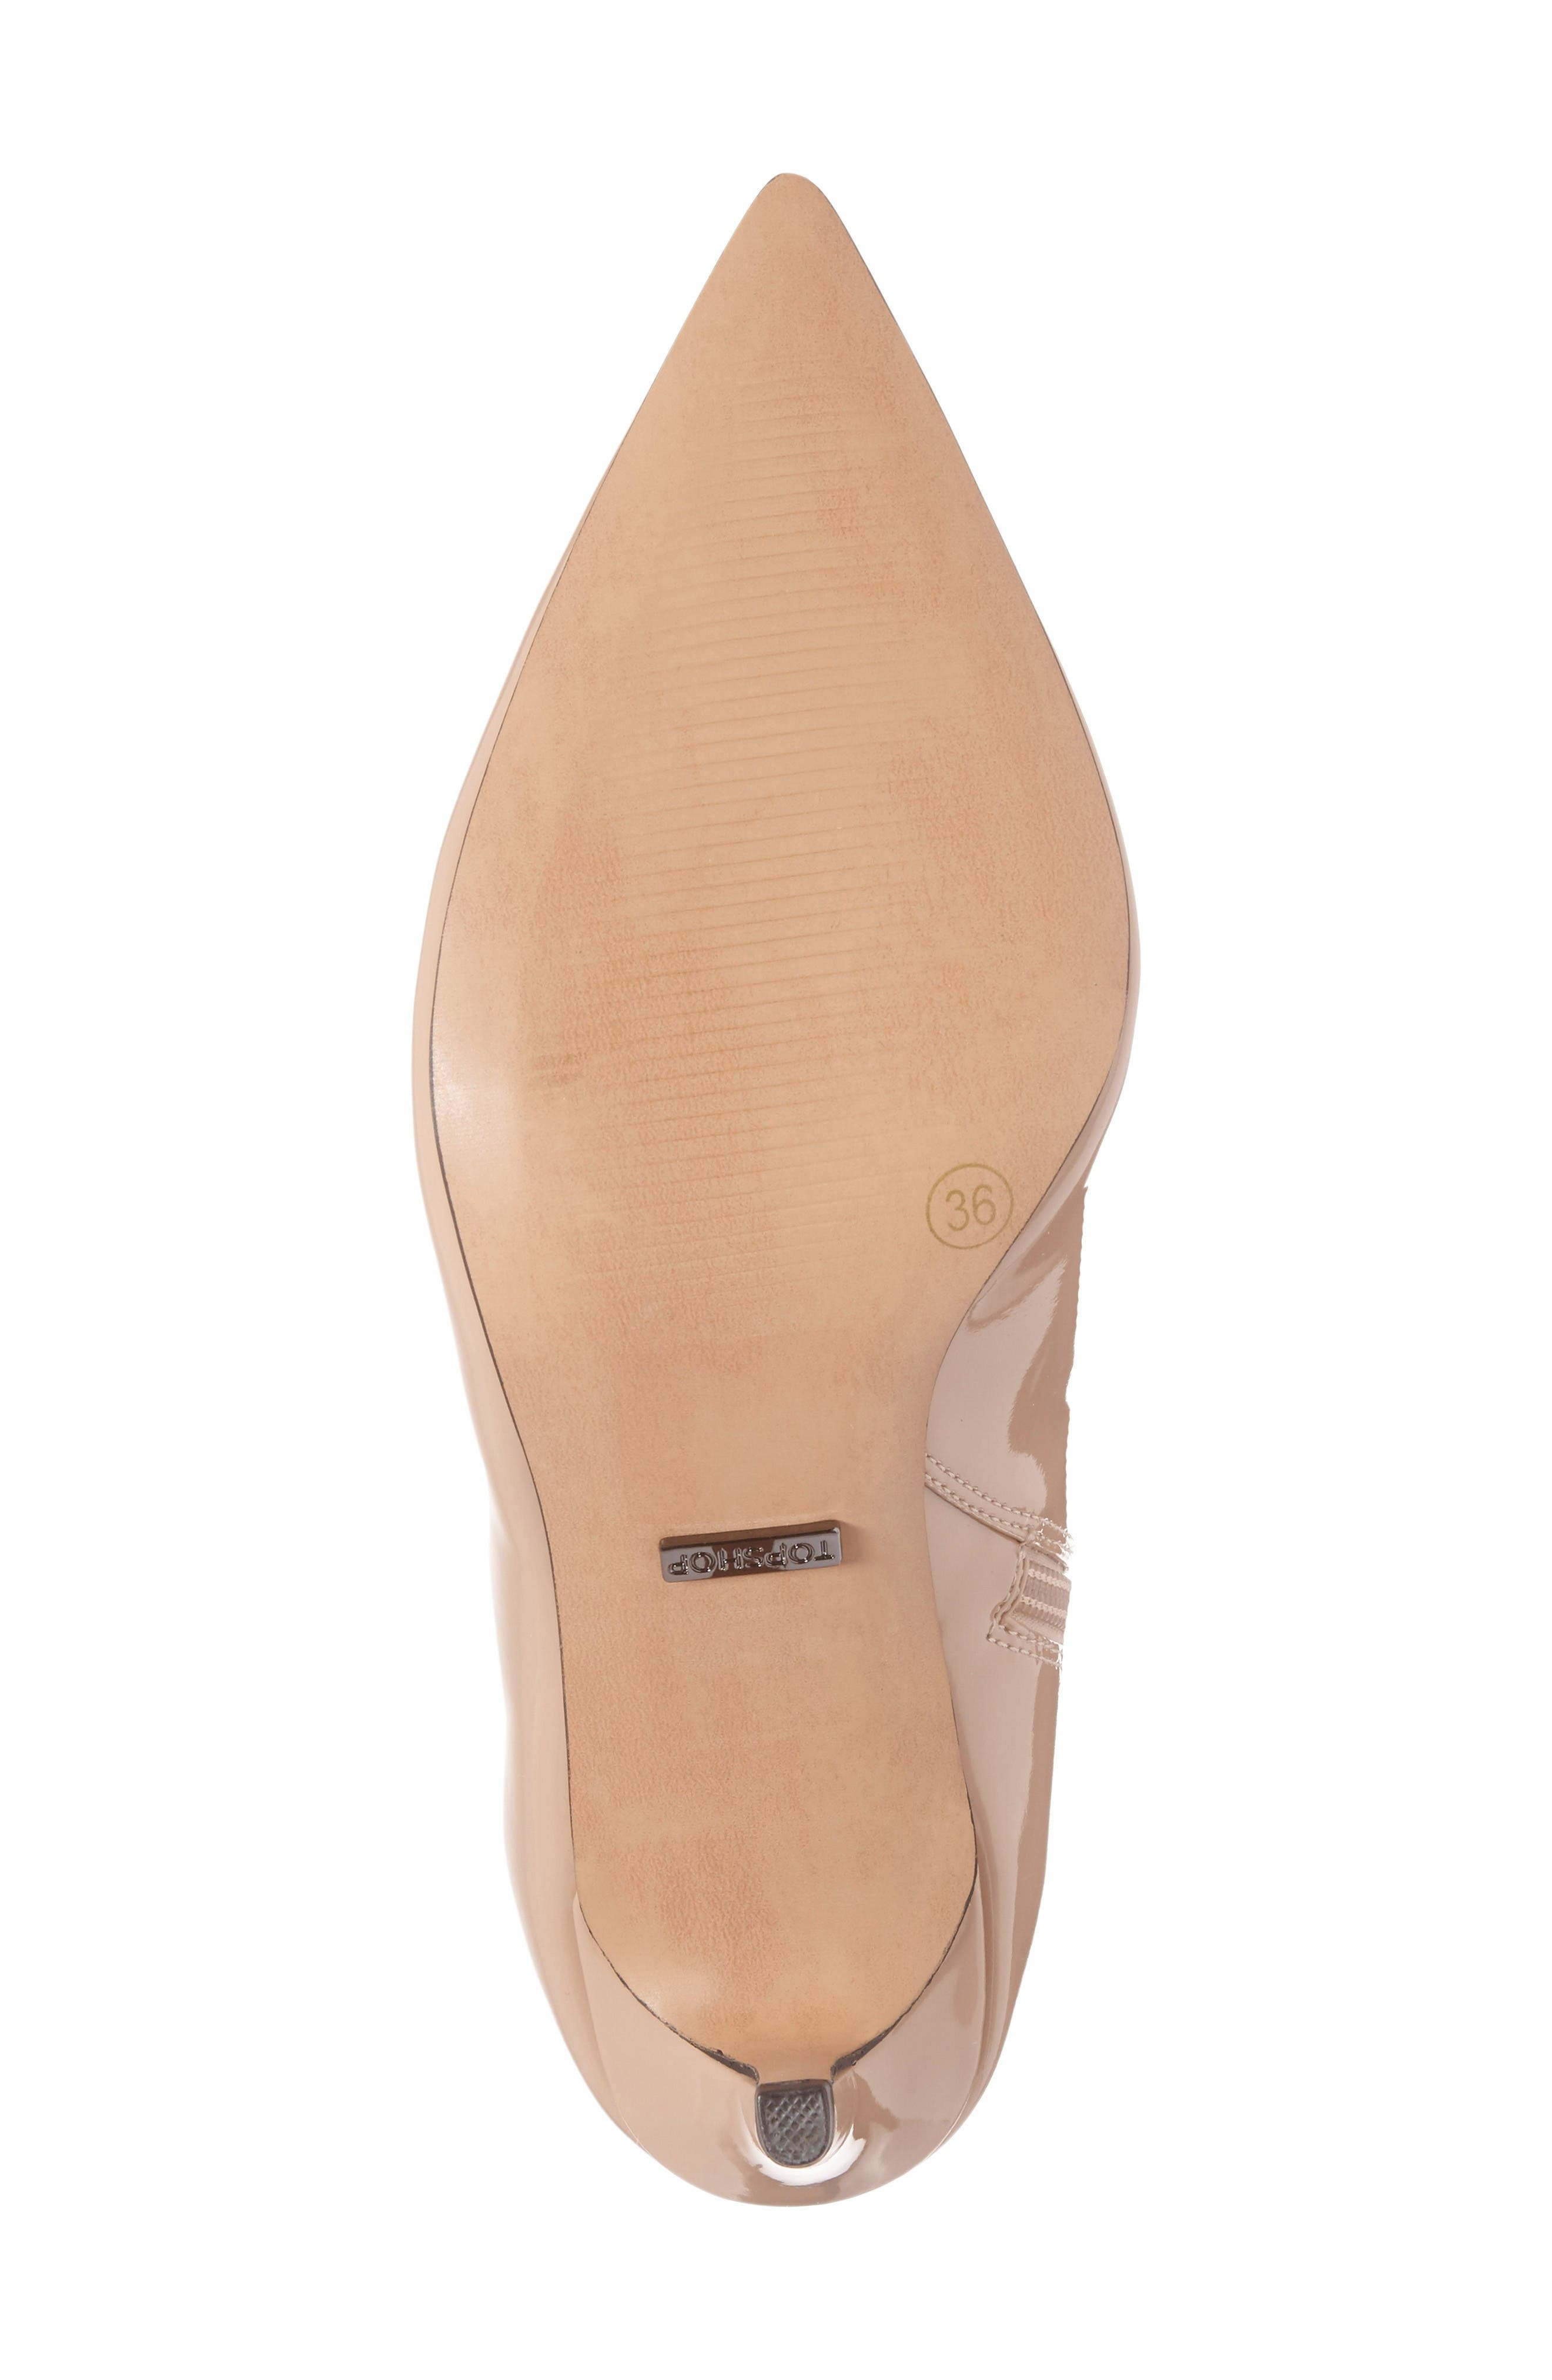 Mimosa Pointy Toe Bootie,                             Alternate thumbnail 4, color,                             Nude